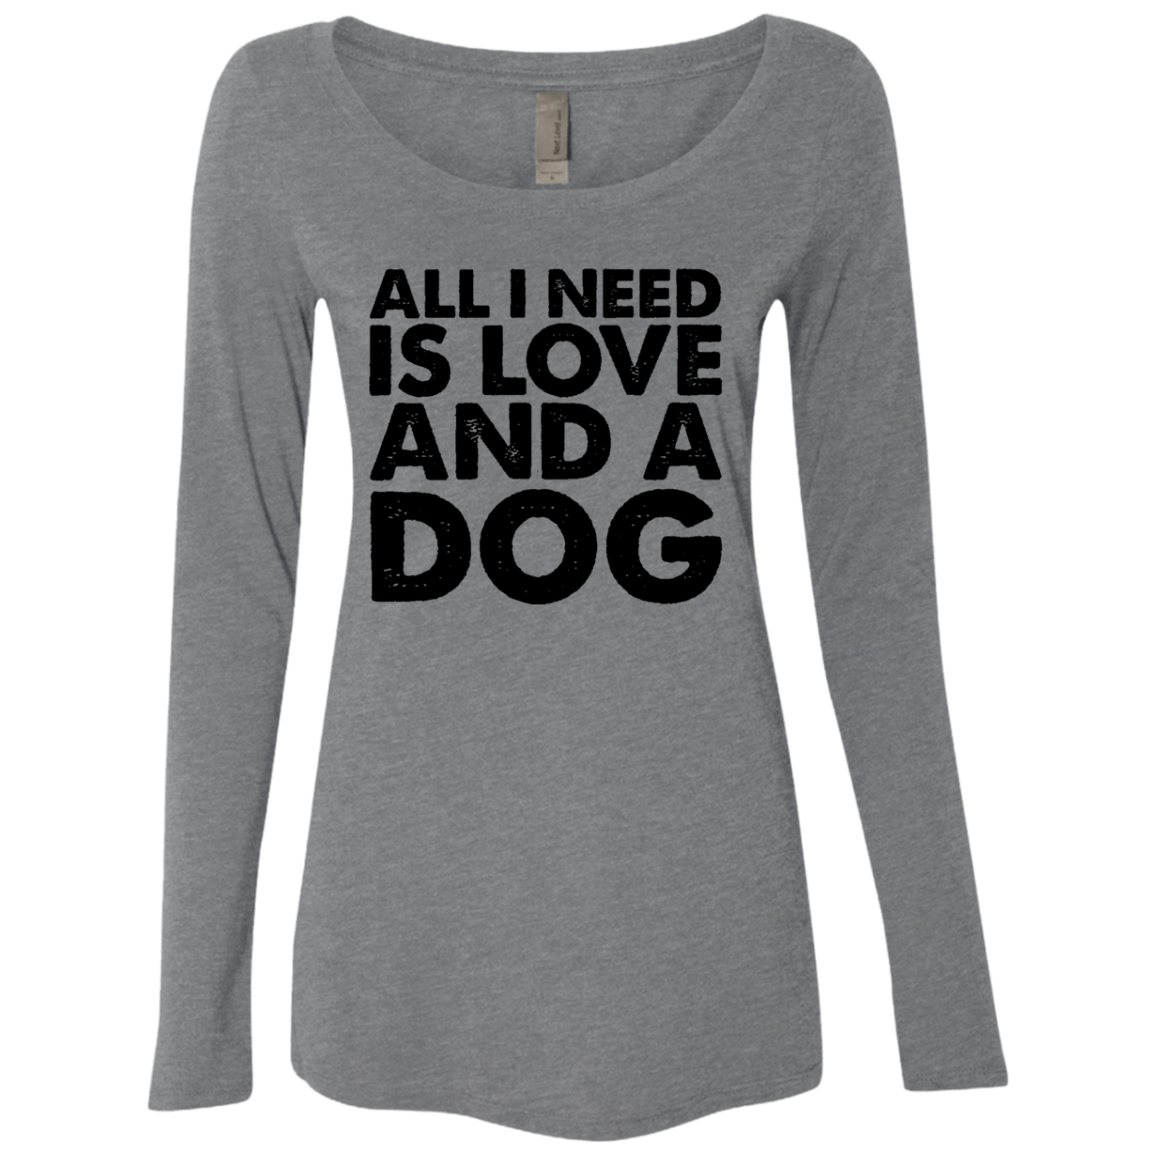 All I Need is Love and a Dog Women's Long Sleeve Tee - Trendy Tees